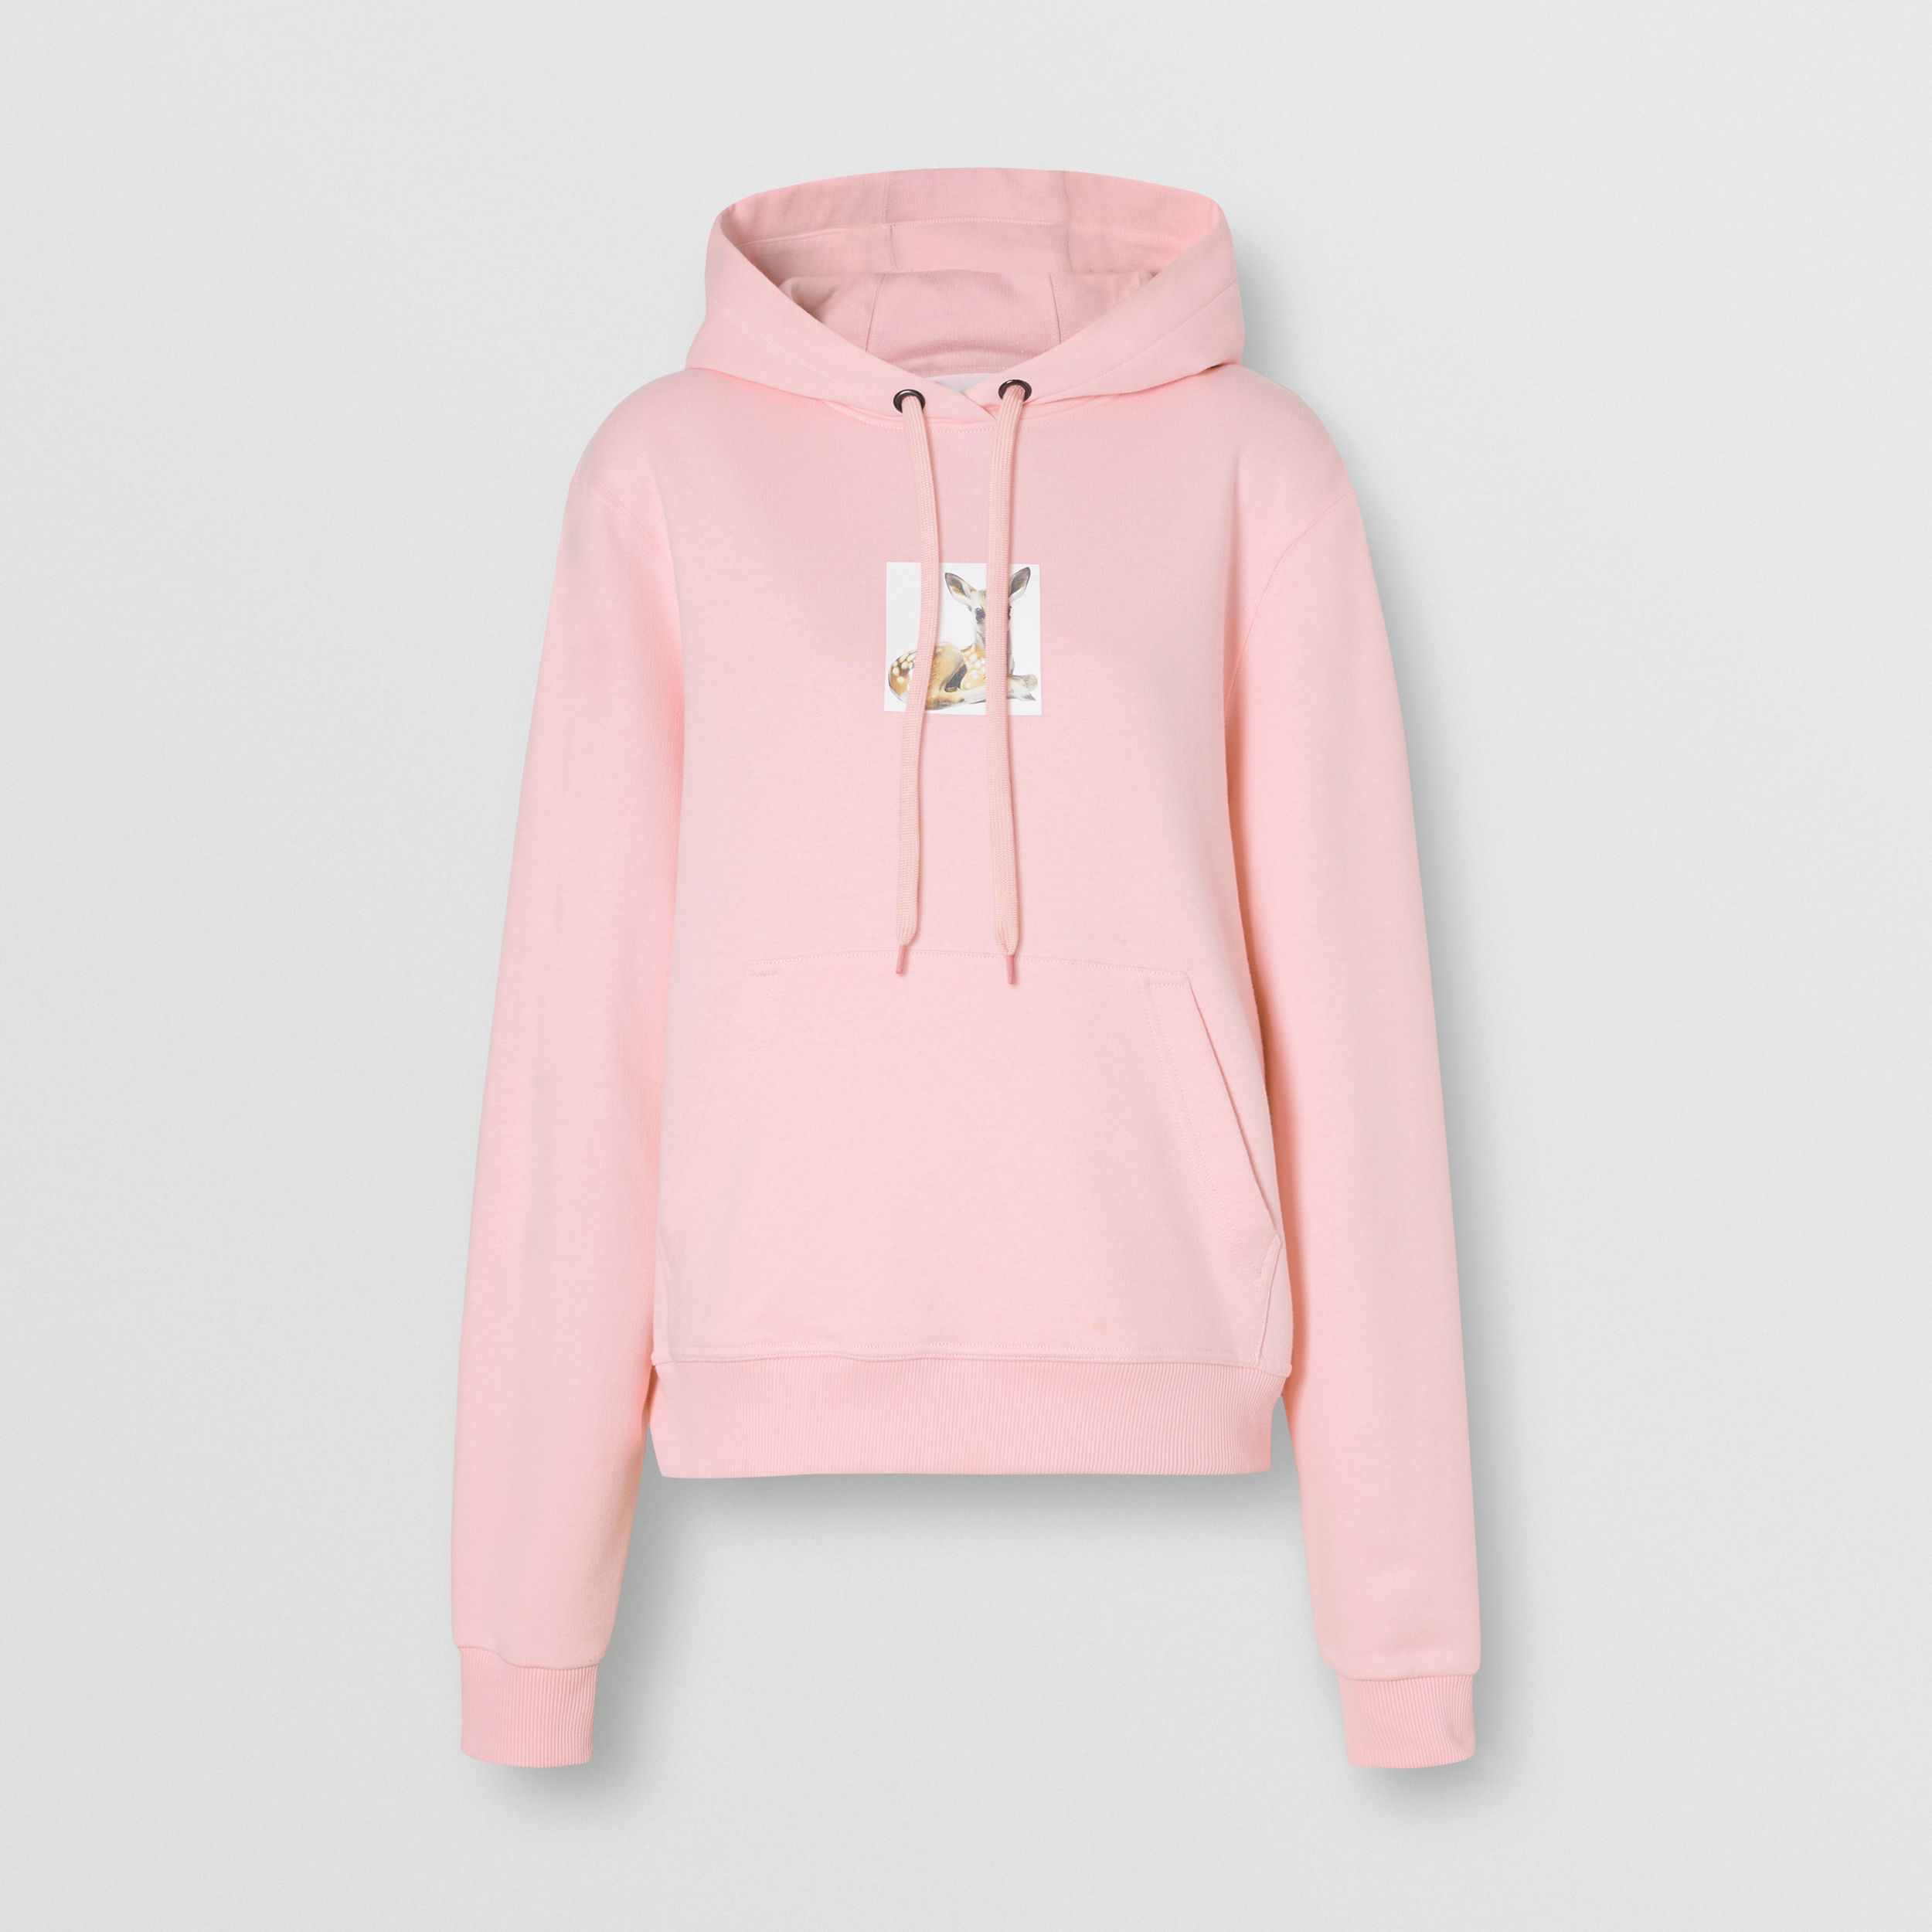 Deer Print Cotton Hoodie in Candy Pink - Women | Burberry United Kingdom - 4